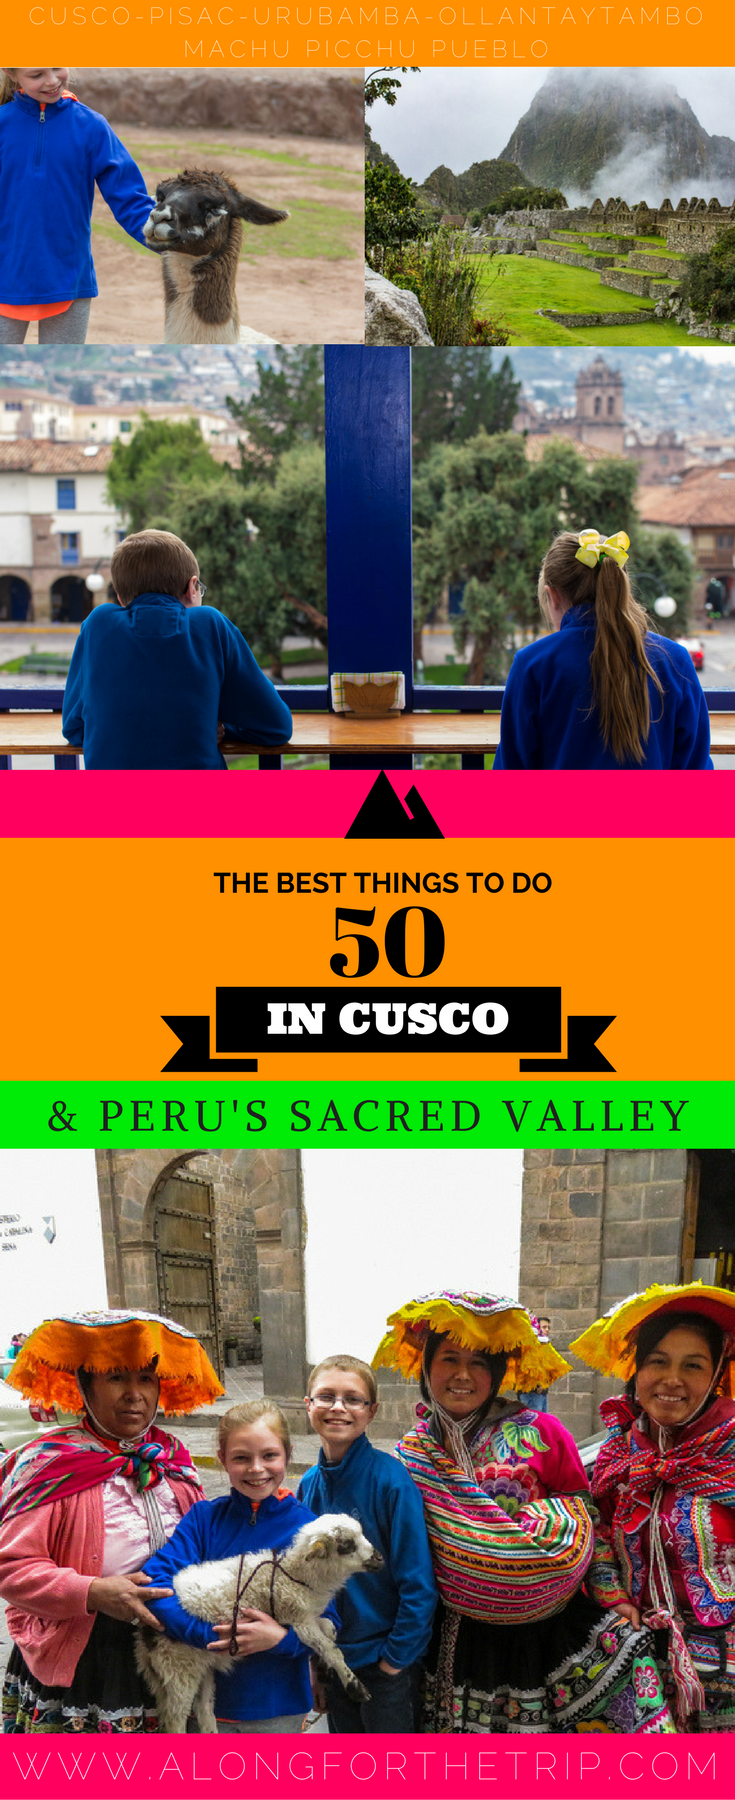 We loved Peru for it's history, scenery, and charming people and you will too! From Machu Picchu, Quechuan textiles, alpacas, and pisco sours, enjoy the 50 best things to do in Cusco and Sacred Valley Peru.